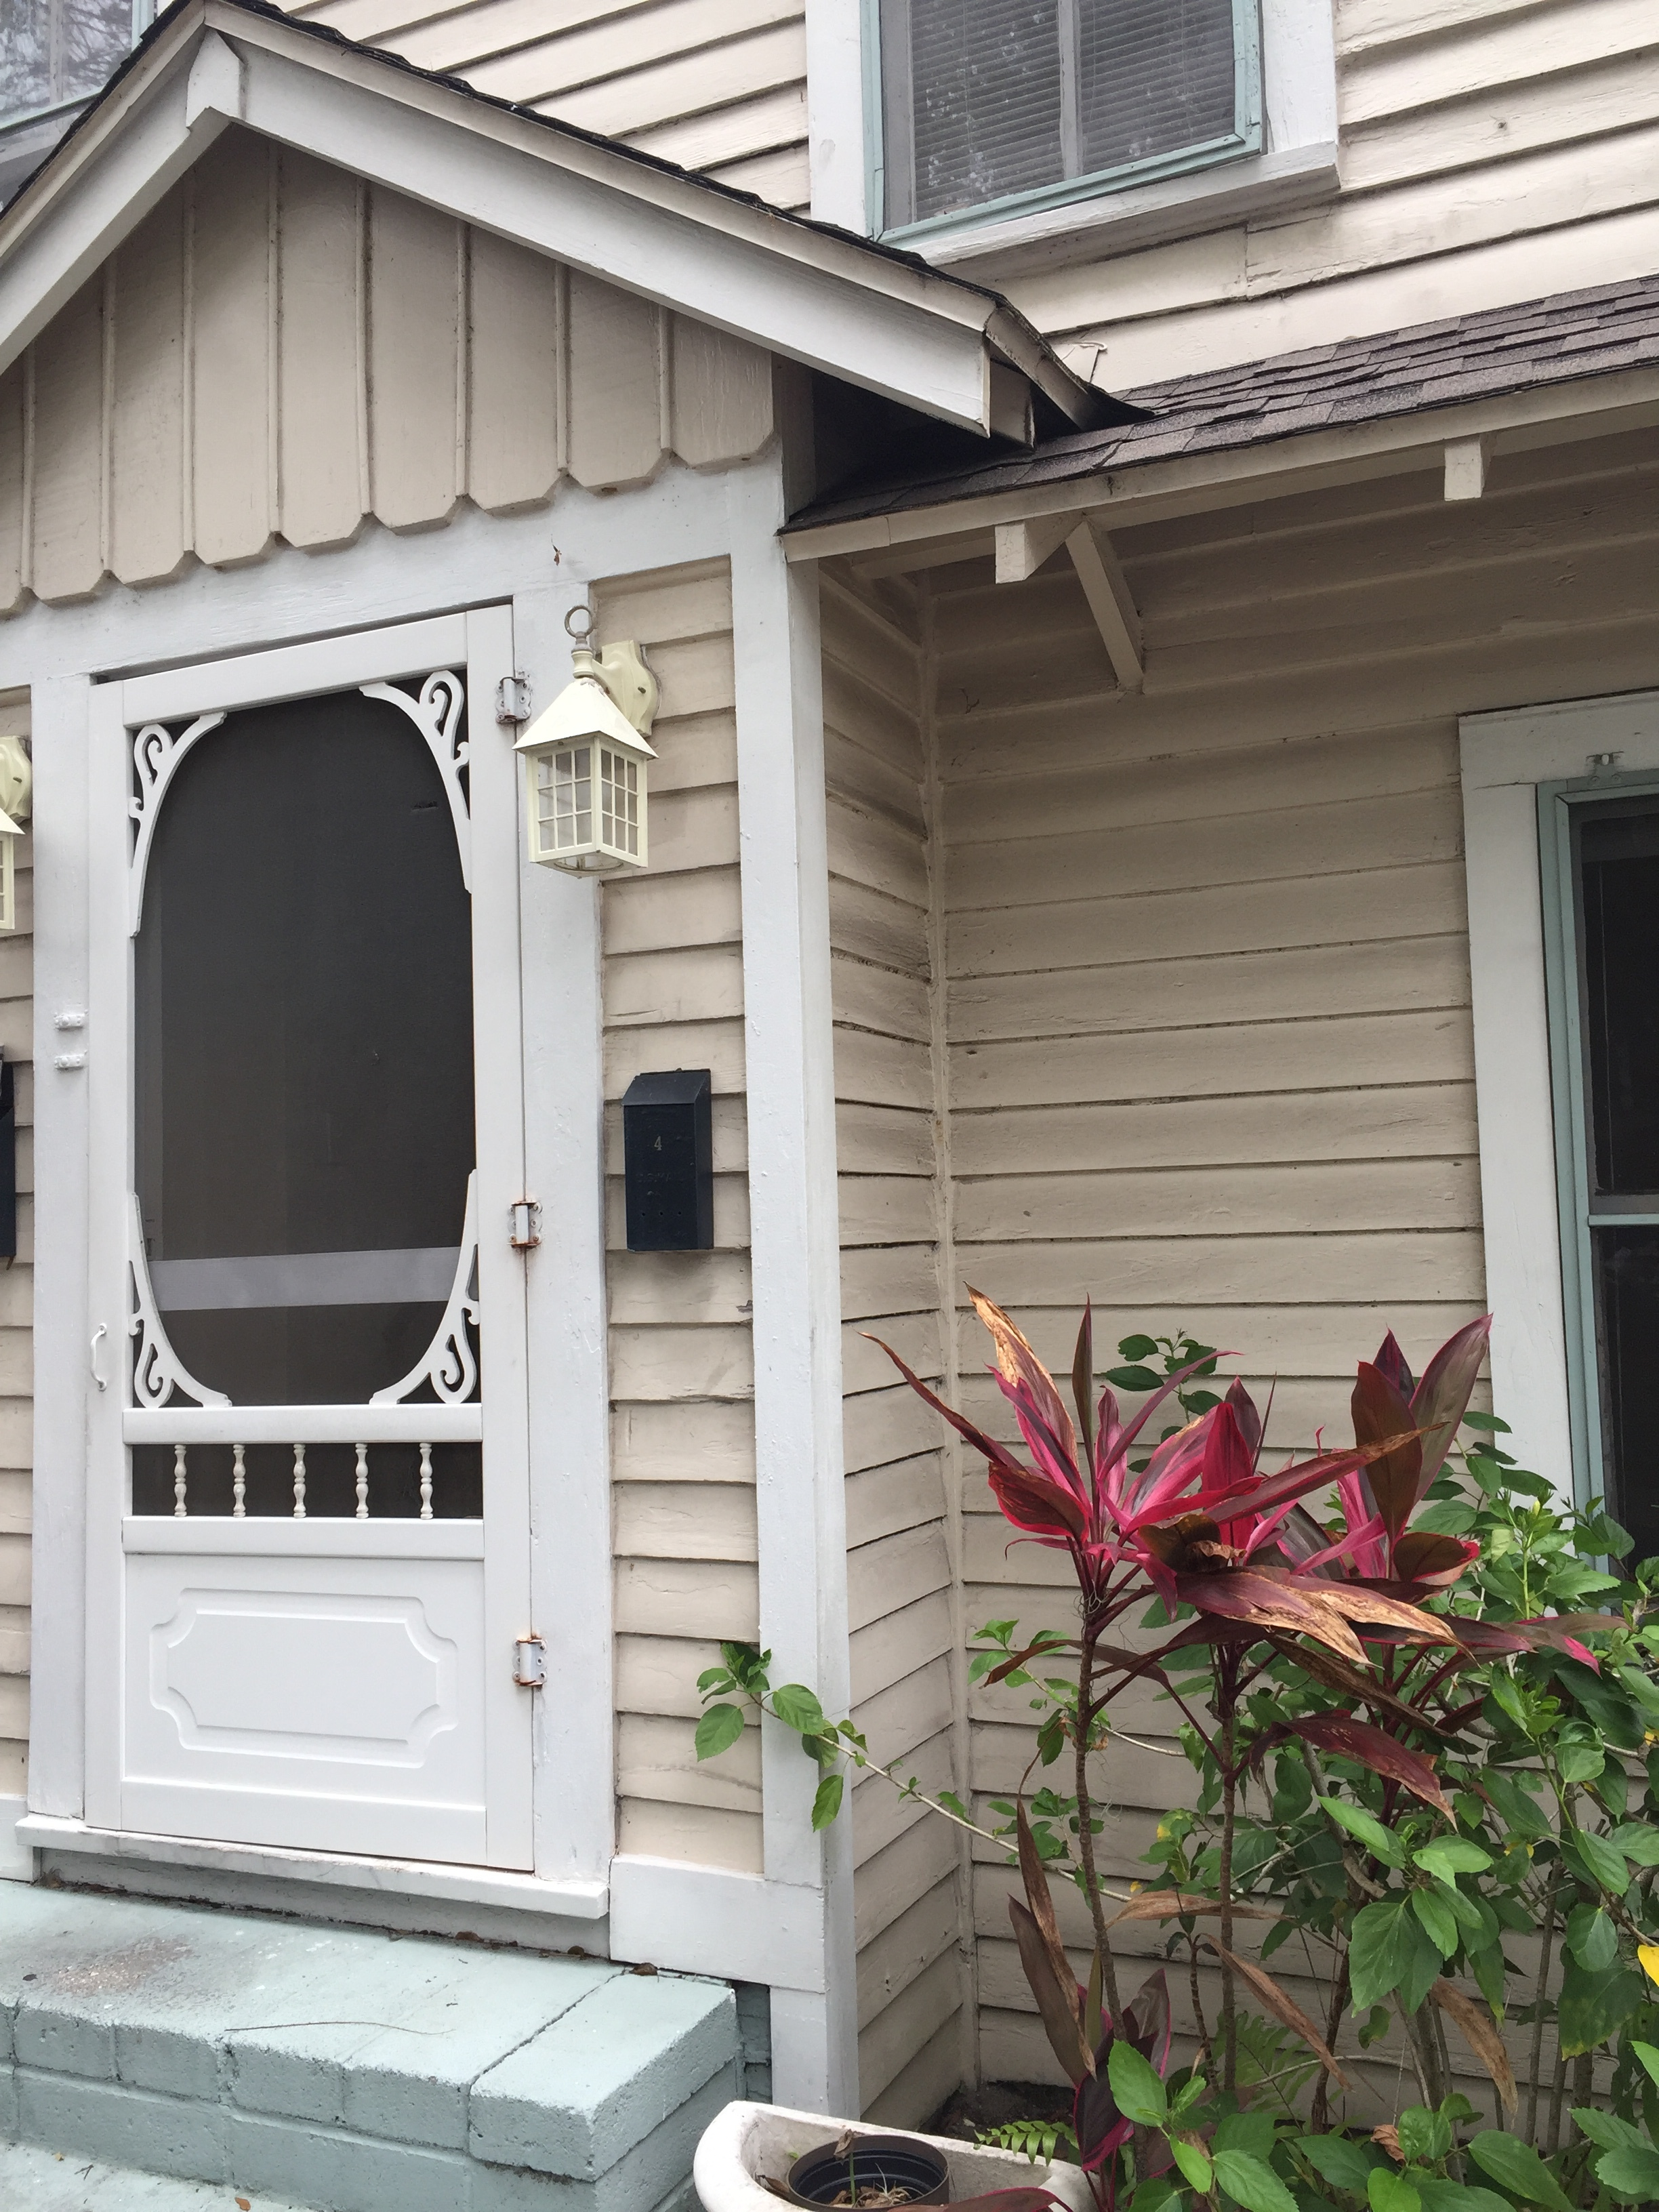 The Carriage House - 1 Bed / 1 Bath Off-Market